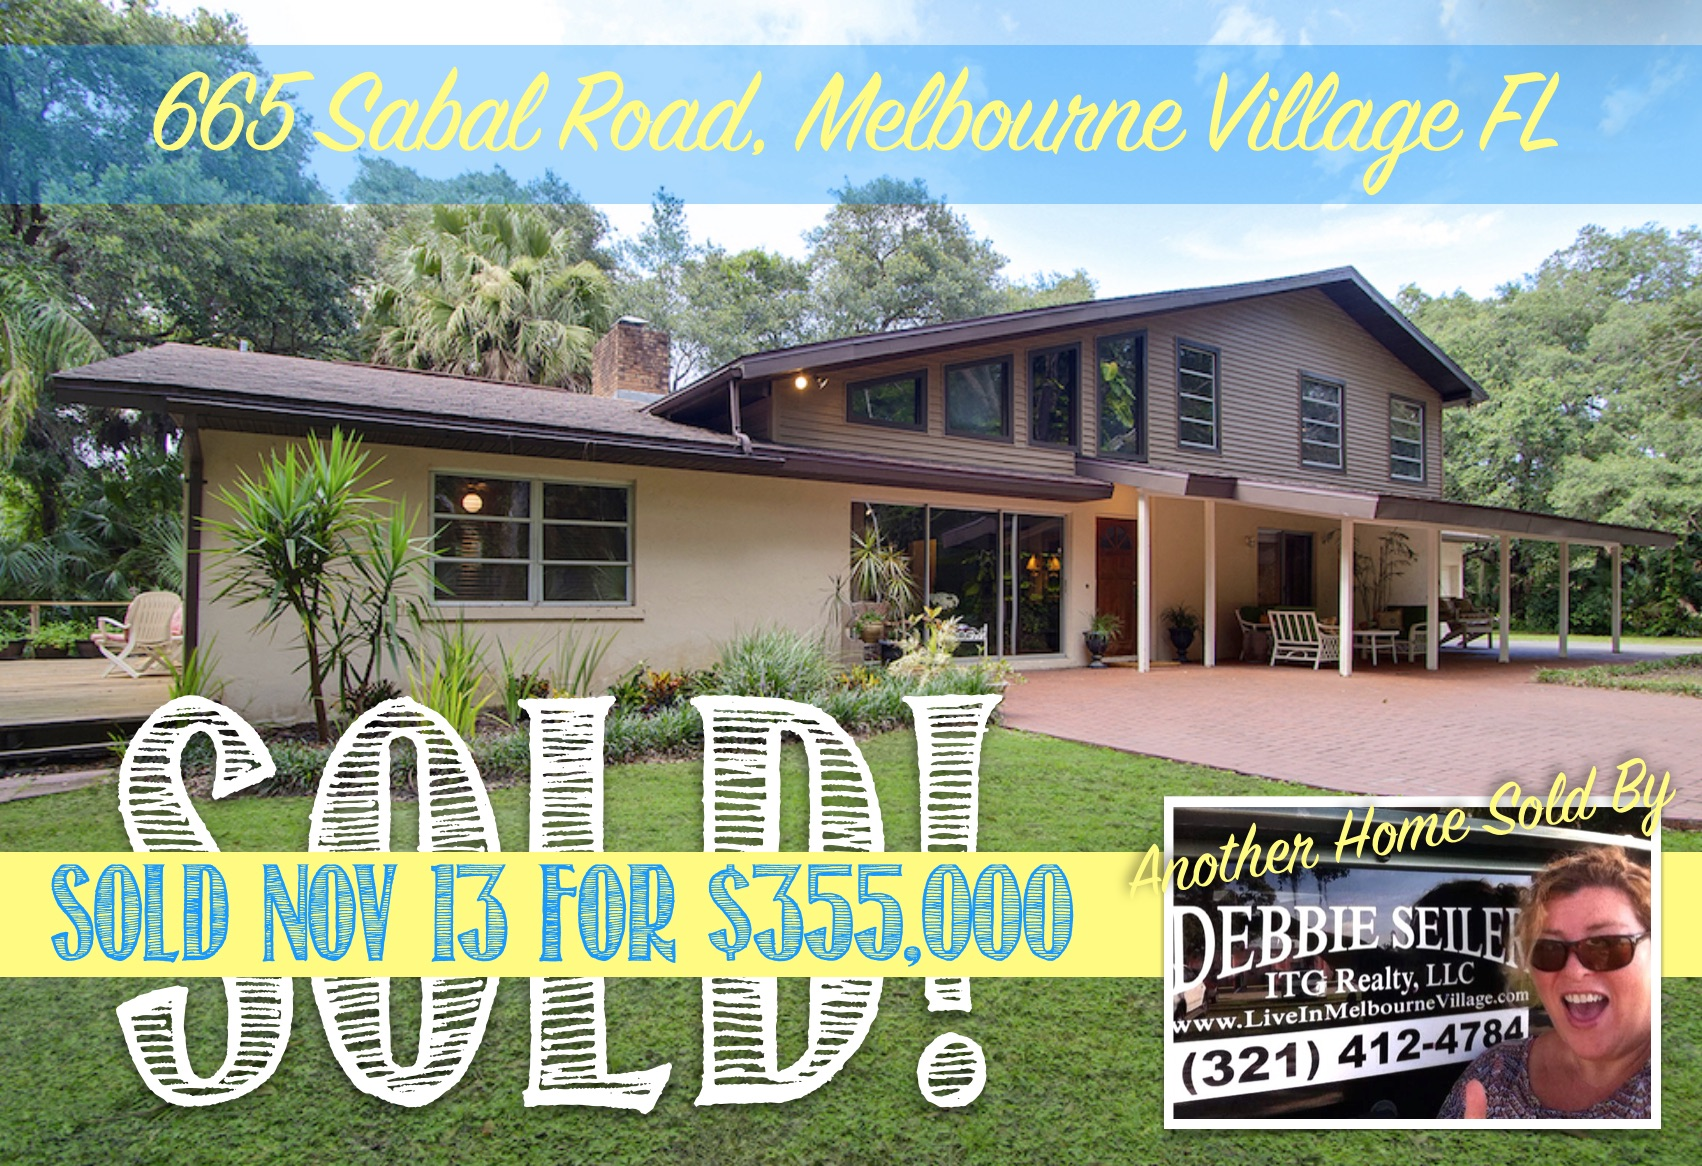 665 Sabal Sold in Melbourne Village